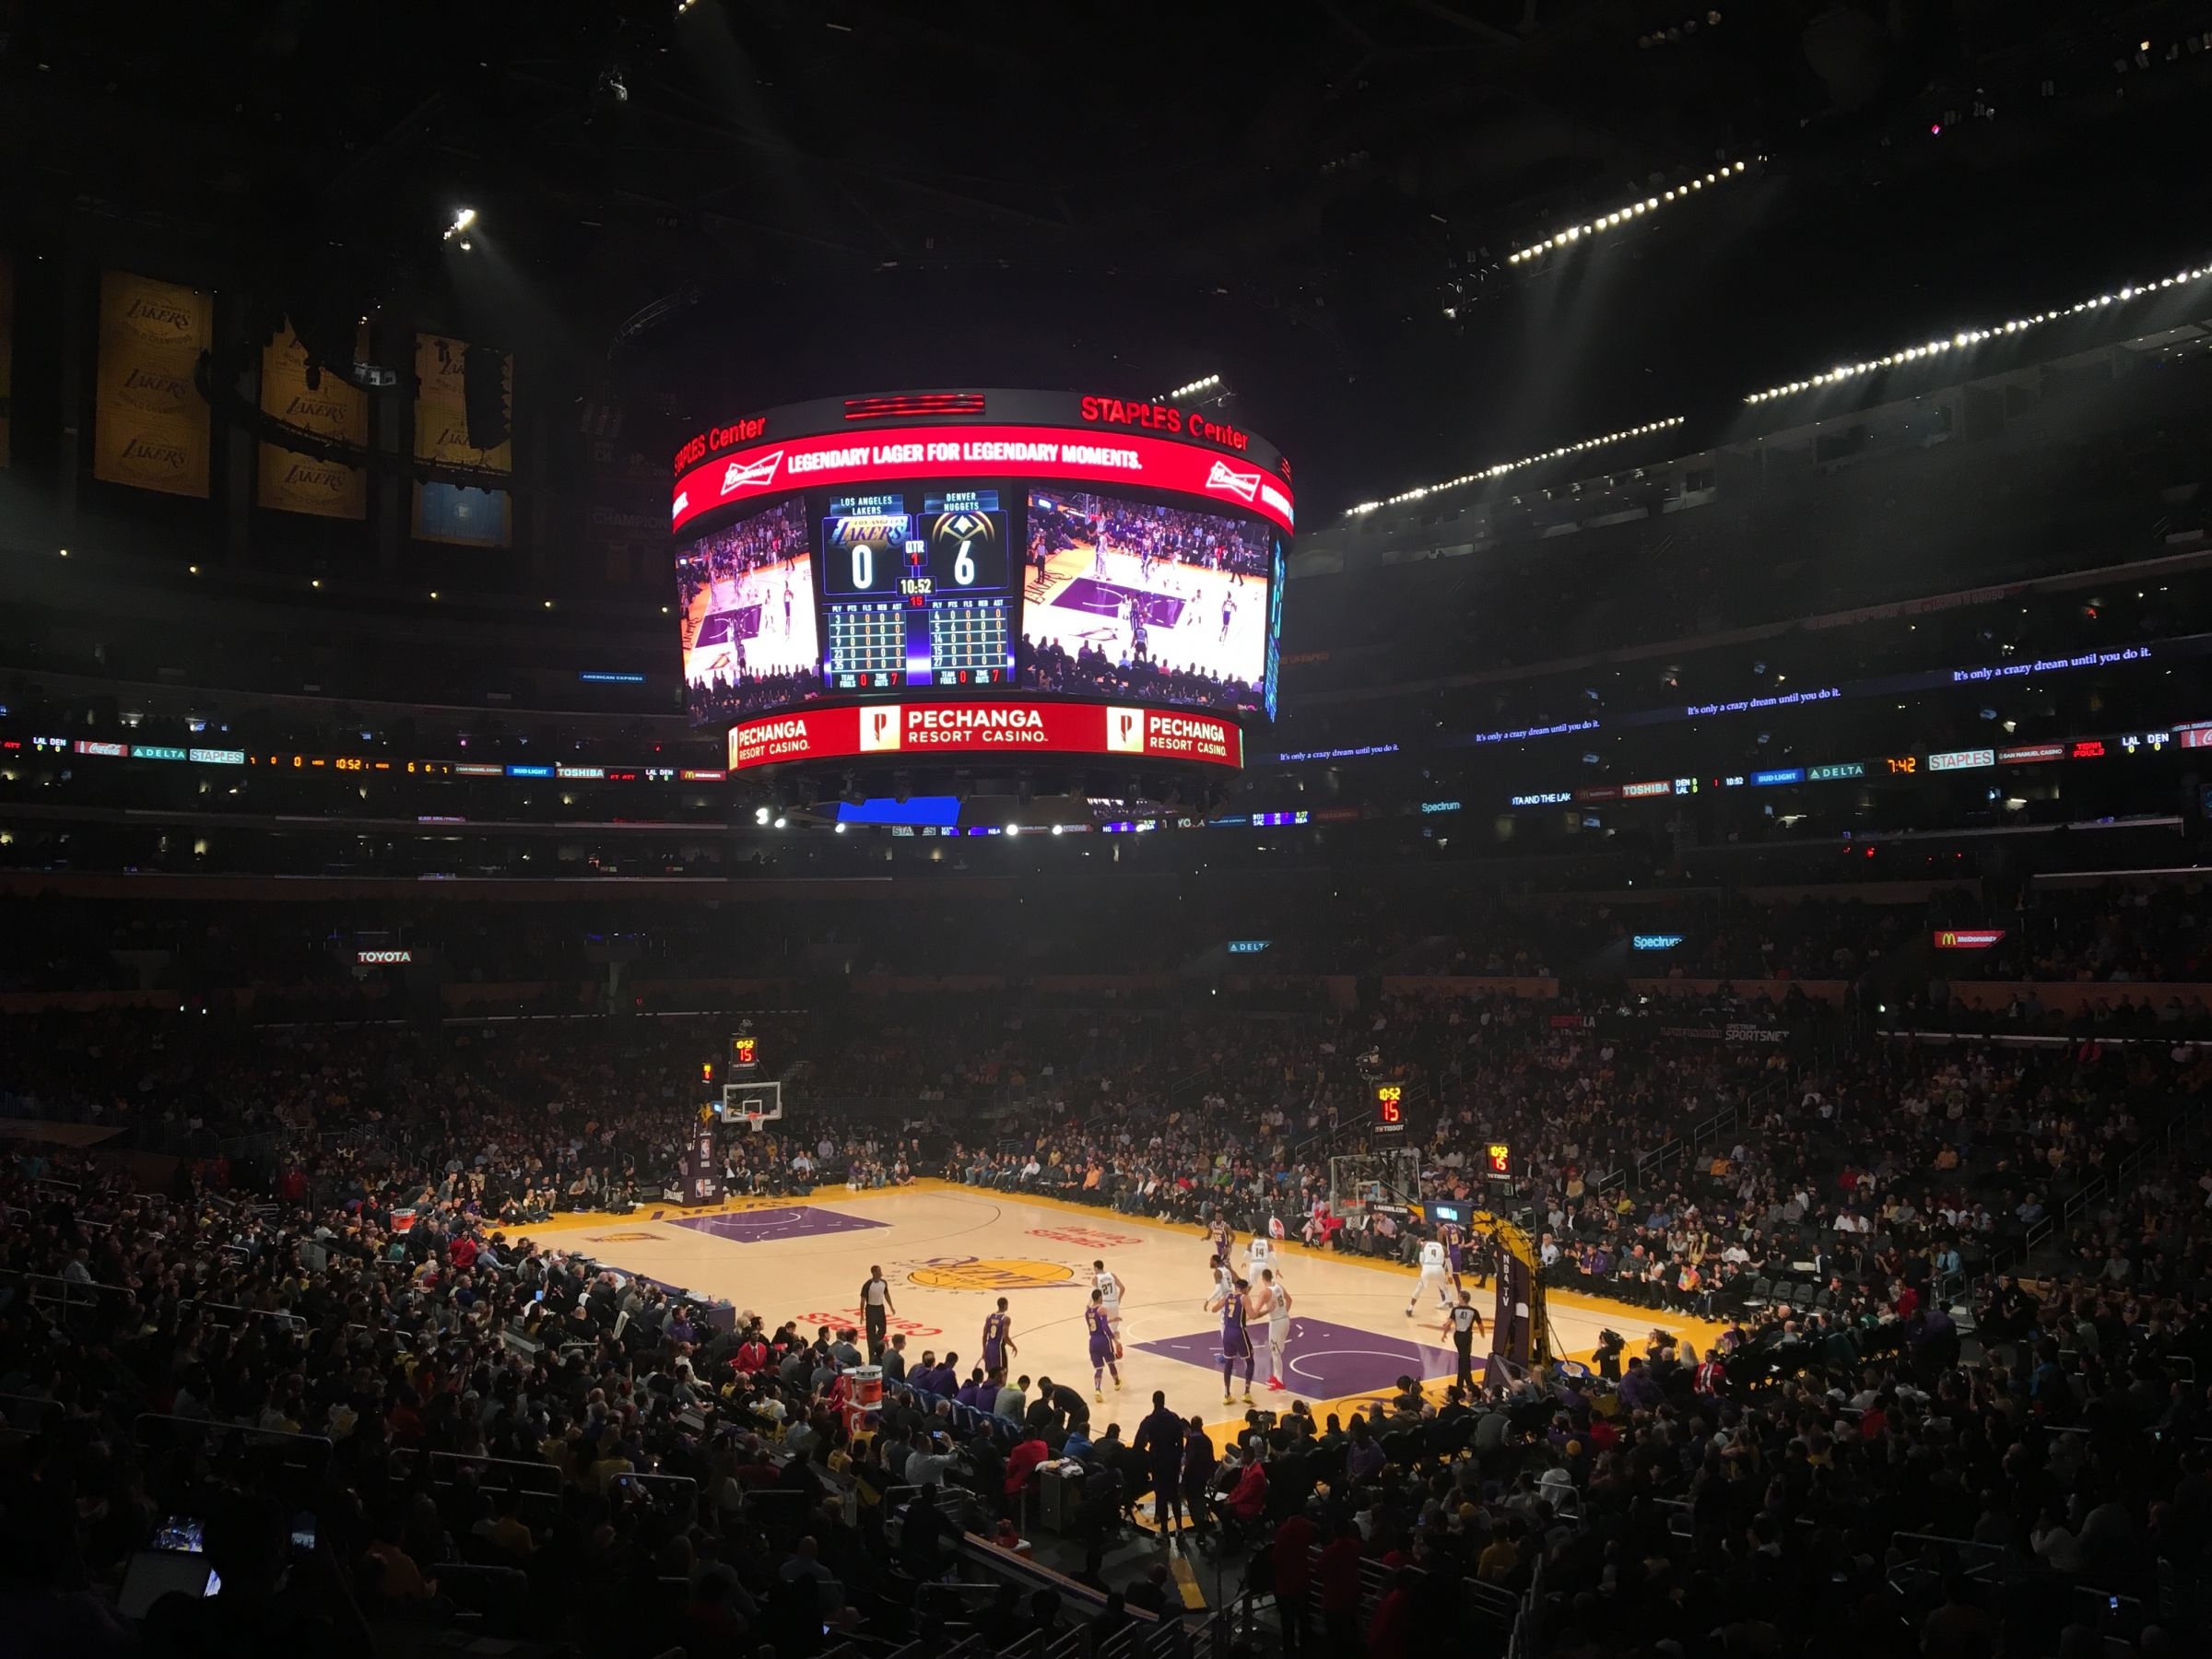 Basketball Seat View for Staples Center Premier 10, Row 2, Seat 2